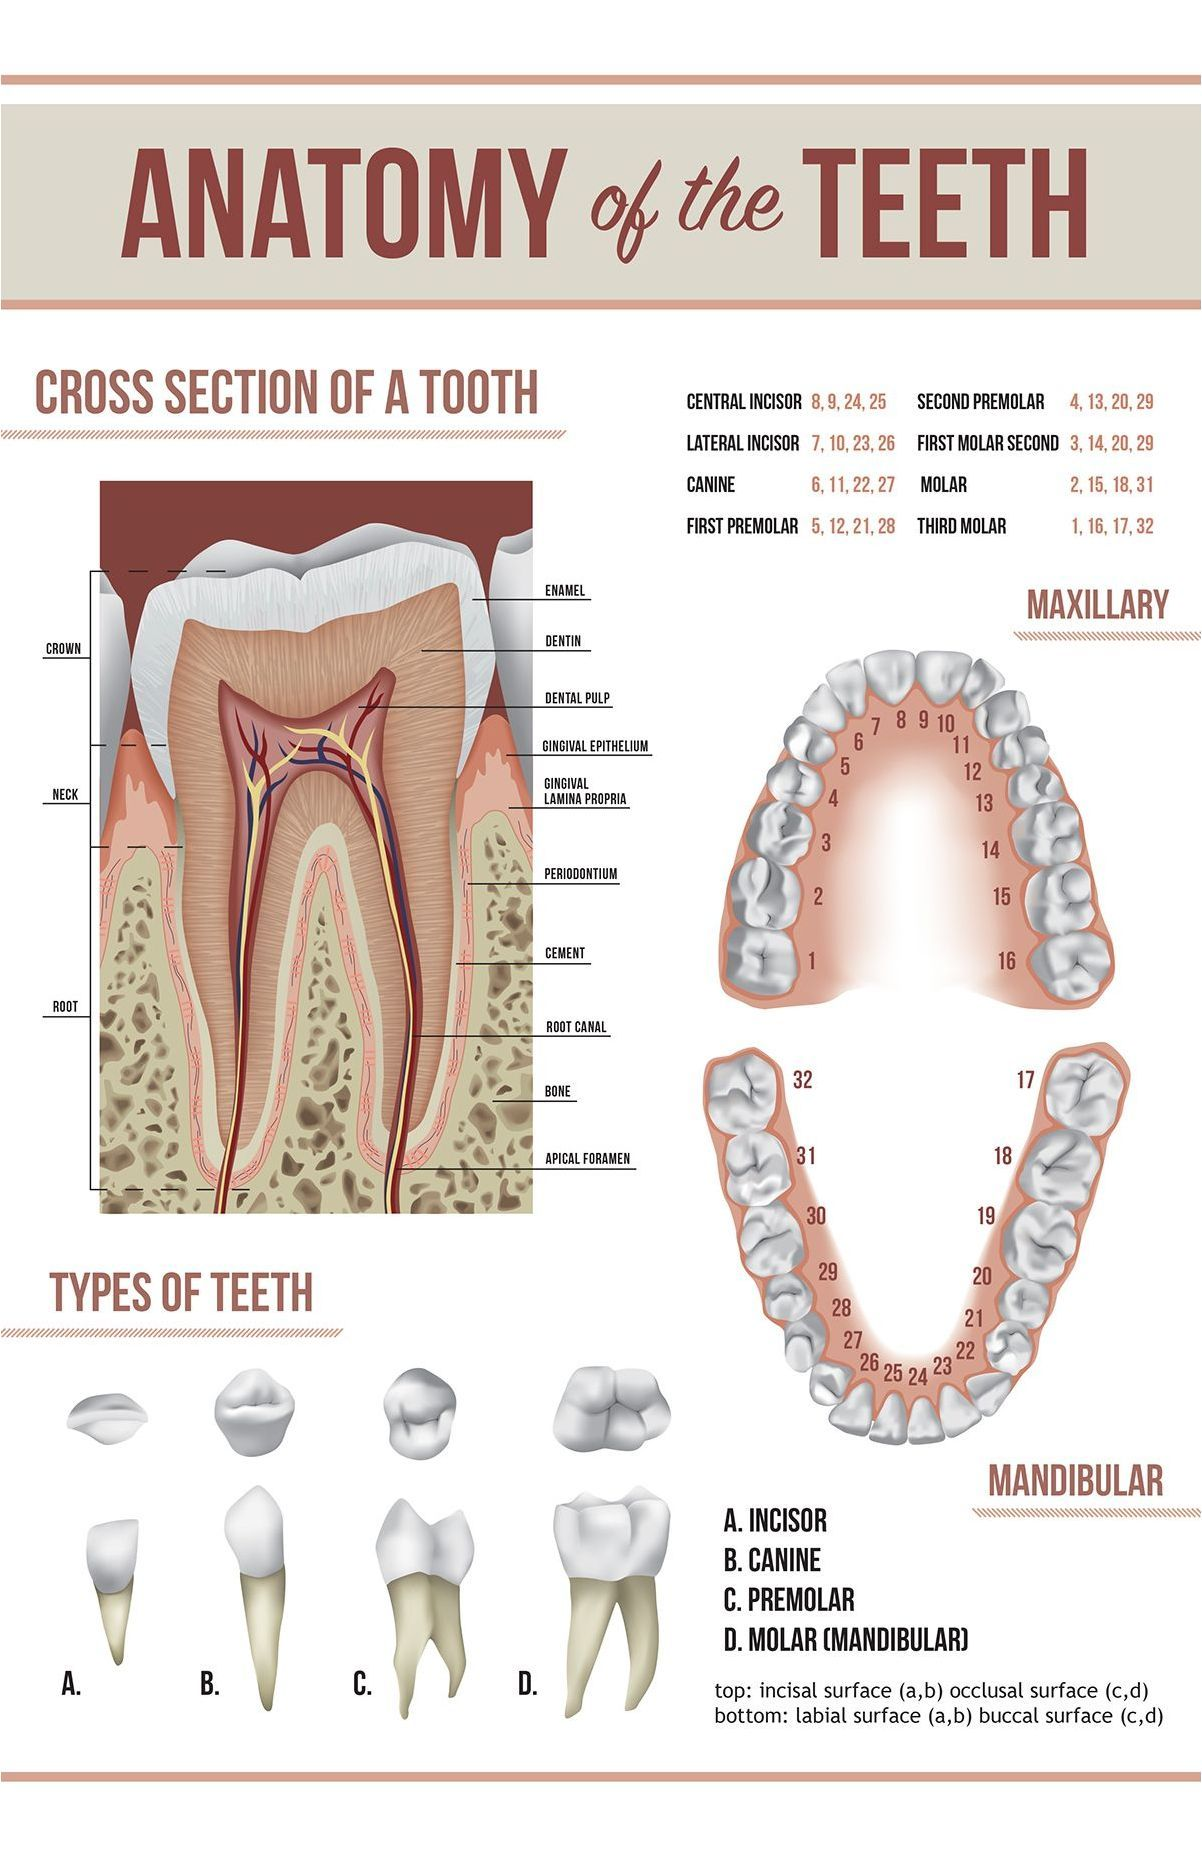 How to Brush Your Teeth - Simple Instructions #dentalassistant